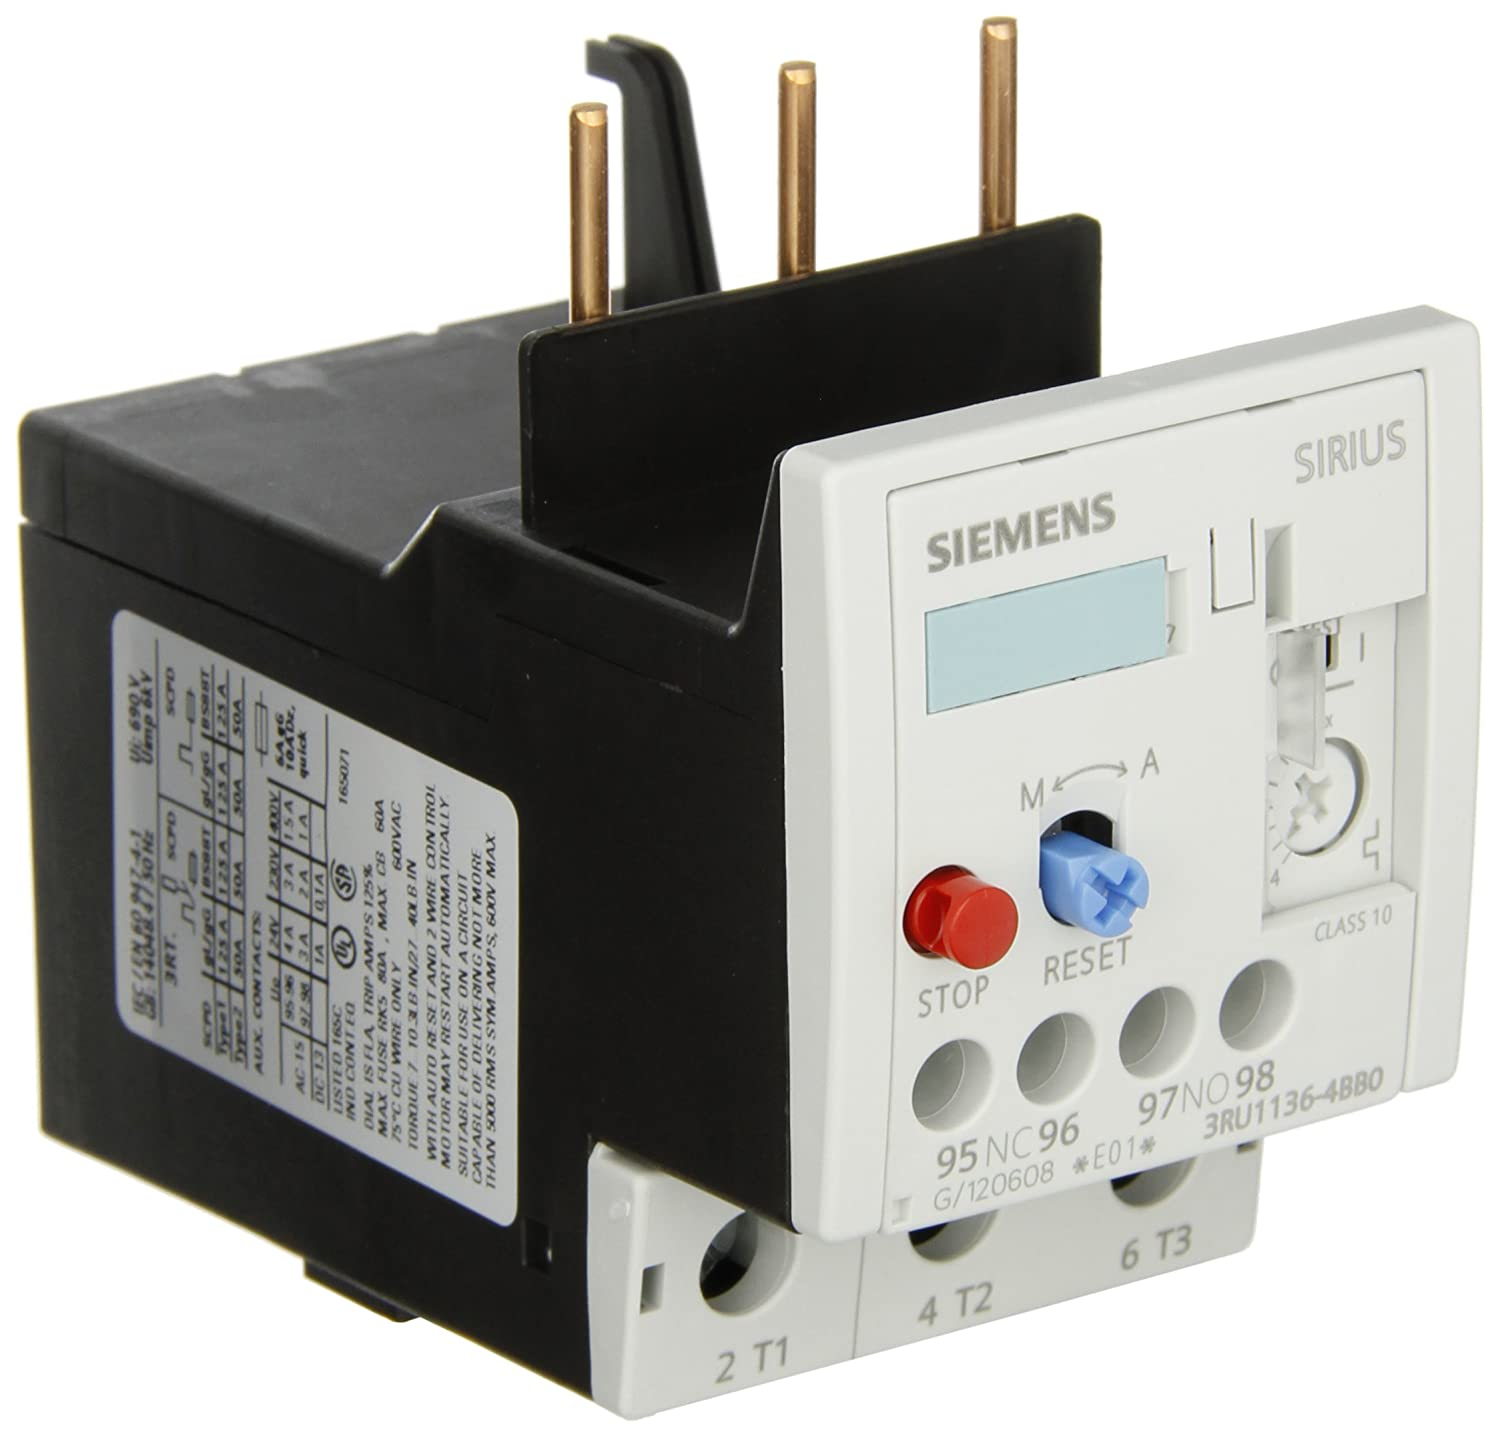 Siemens 3RU11 36-4BB0 Thermal Overload Relay, For Mounting Onto Contactor, Size S2, 14-20A Setting Range